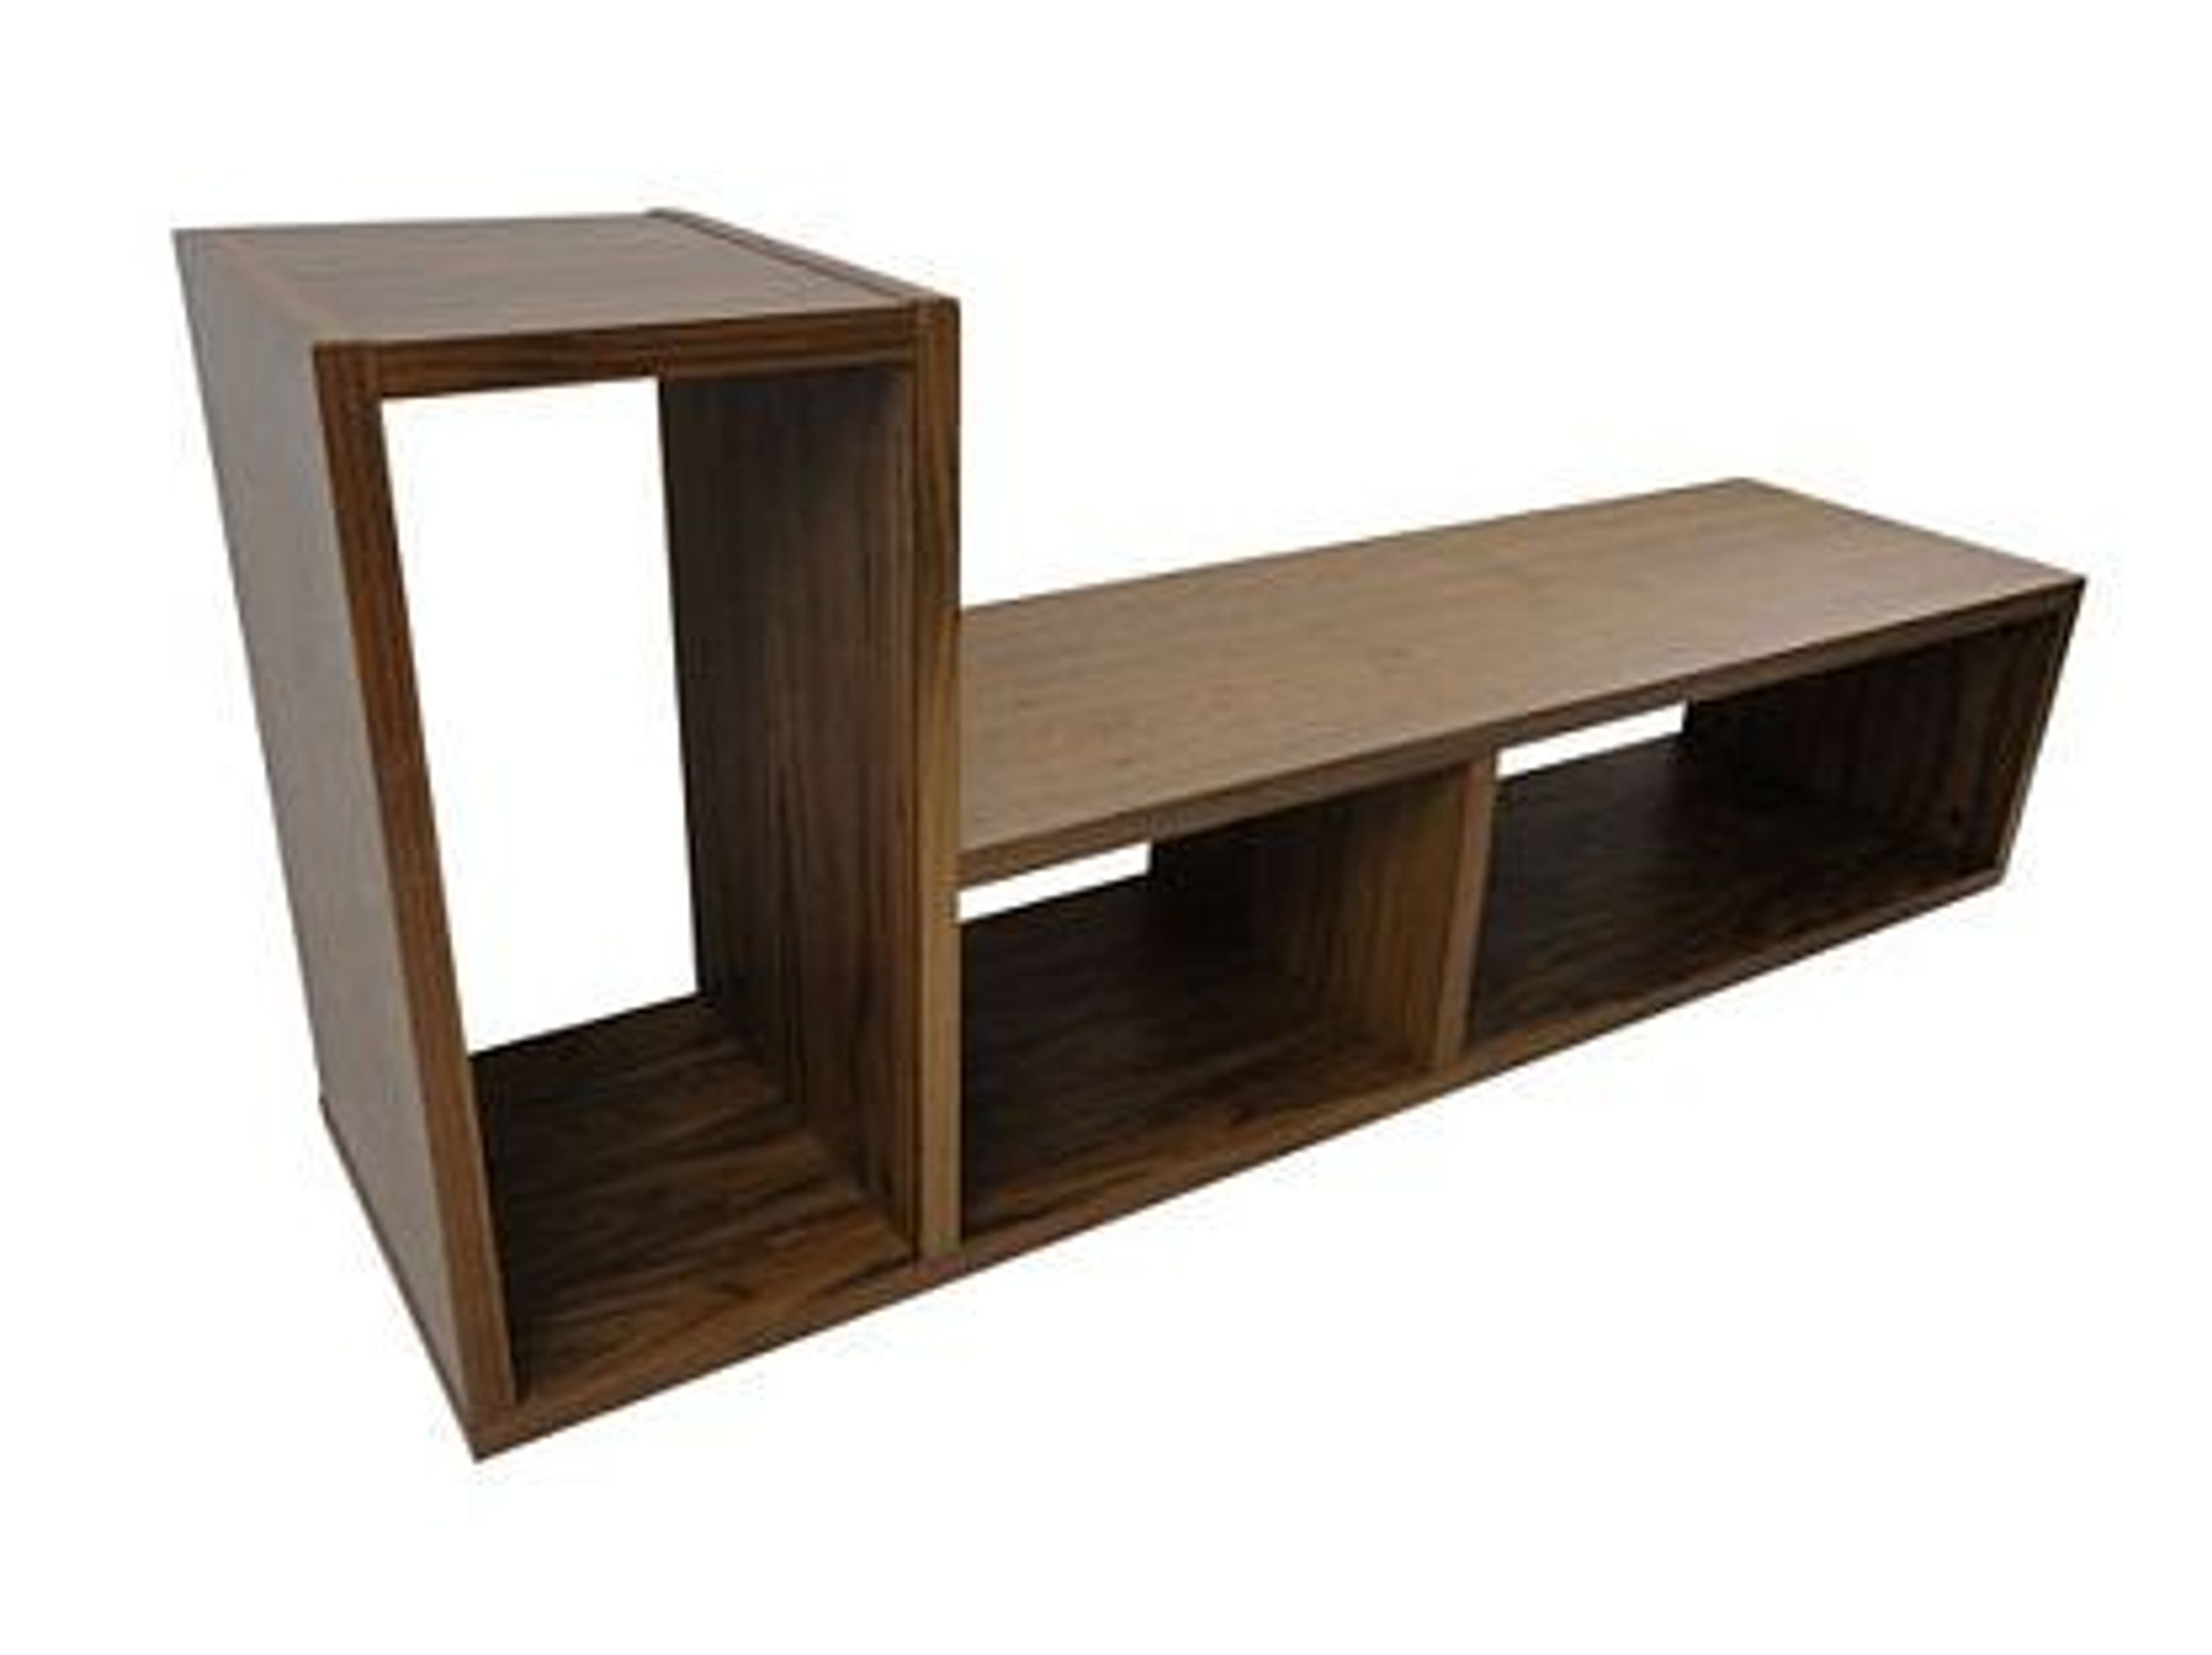 temahome domino regal b cherregal raumteiler holz braun nussbaum neu kaufen bei. Black Bedroom Furniture Sets. Home Design Ideas